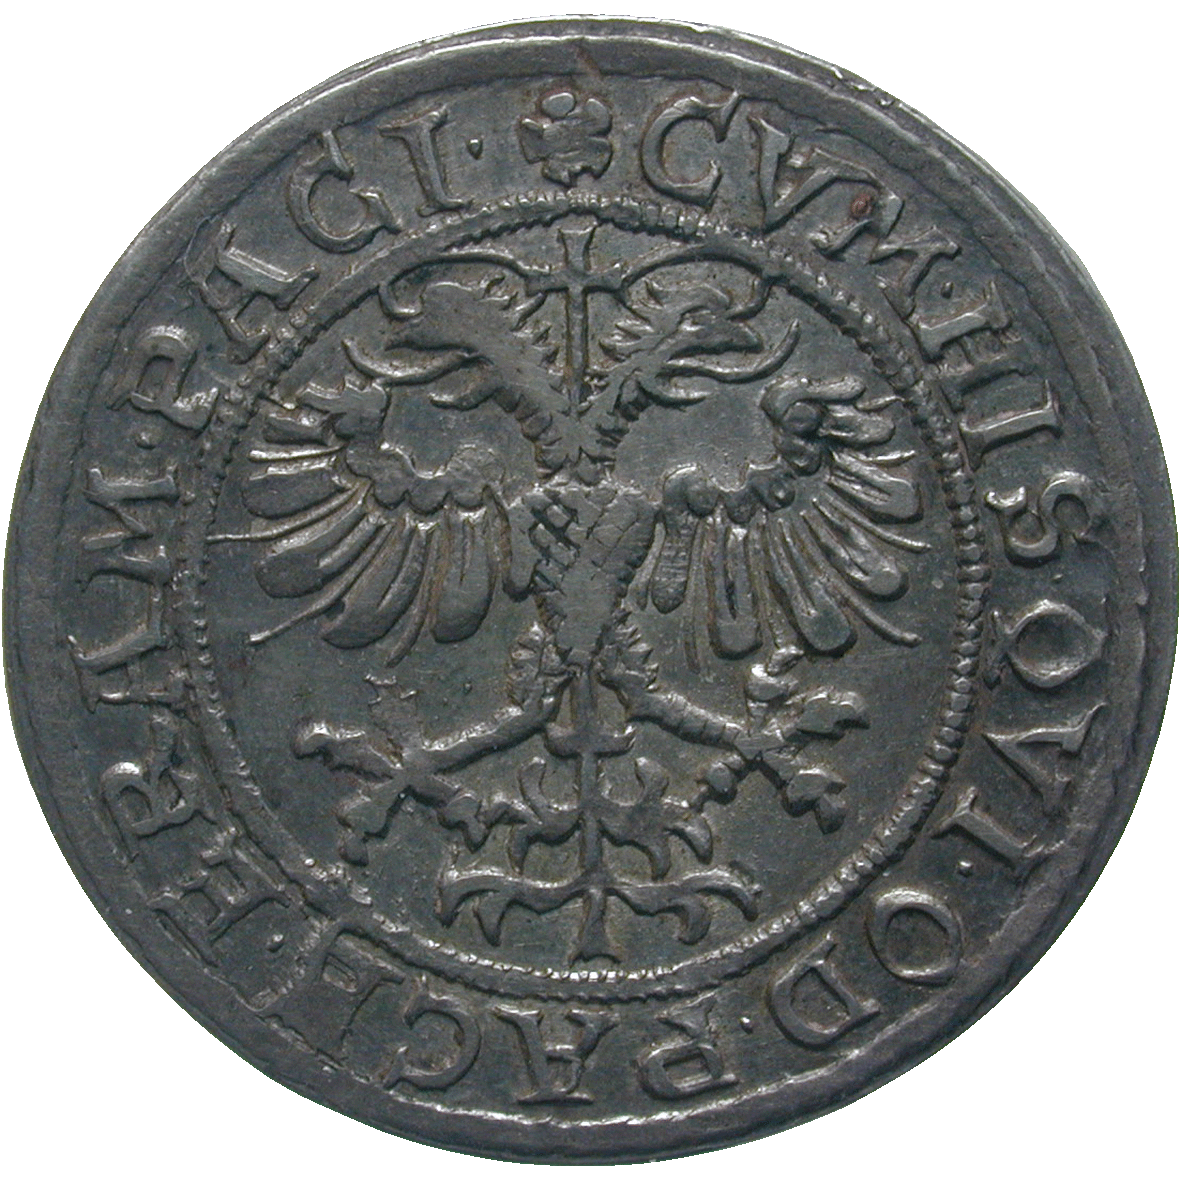 Holy Roman Empire, City of Zug, Dicken 1612 (reverse)